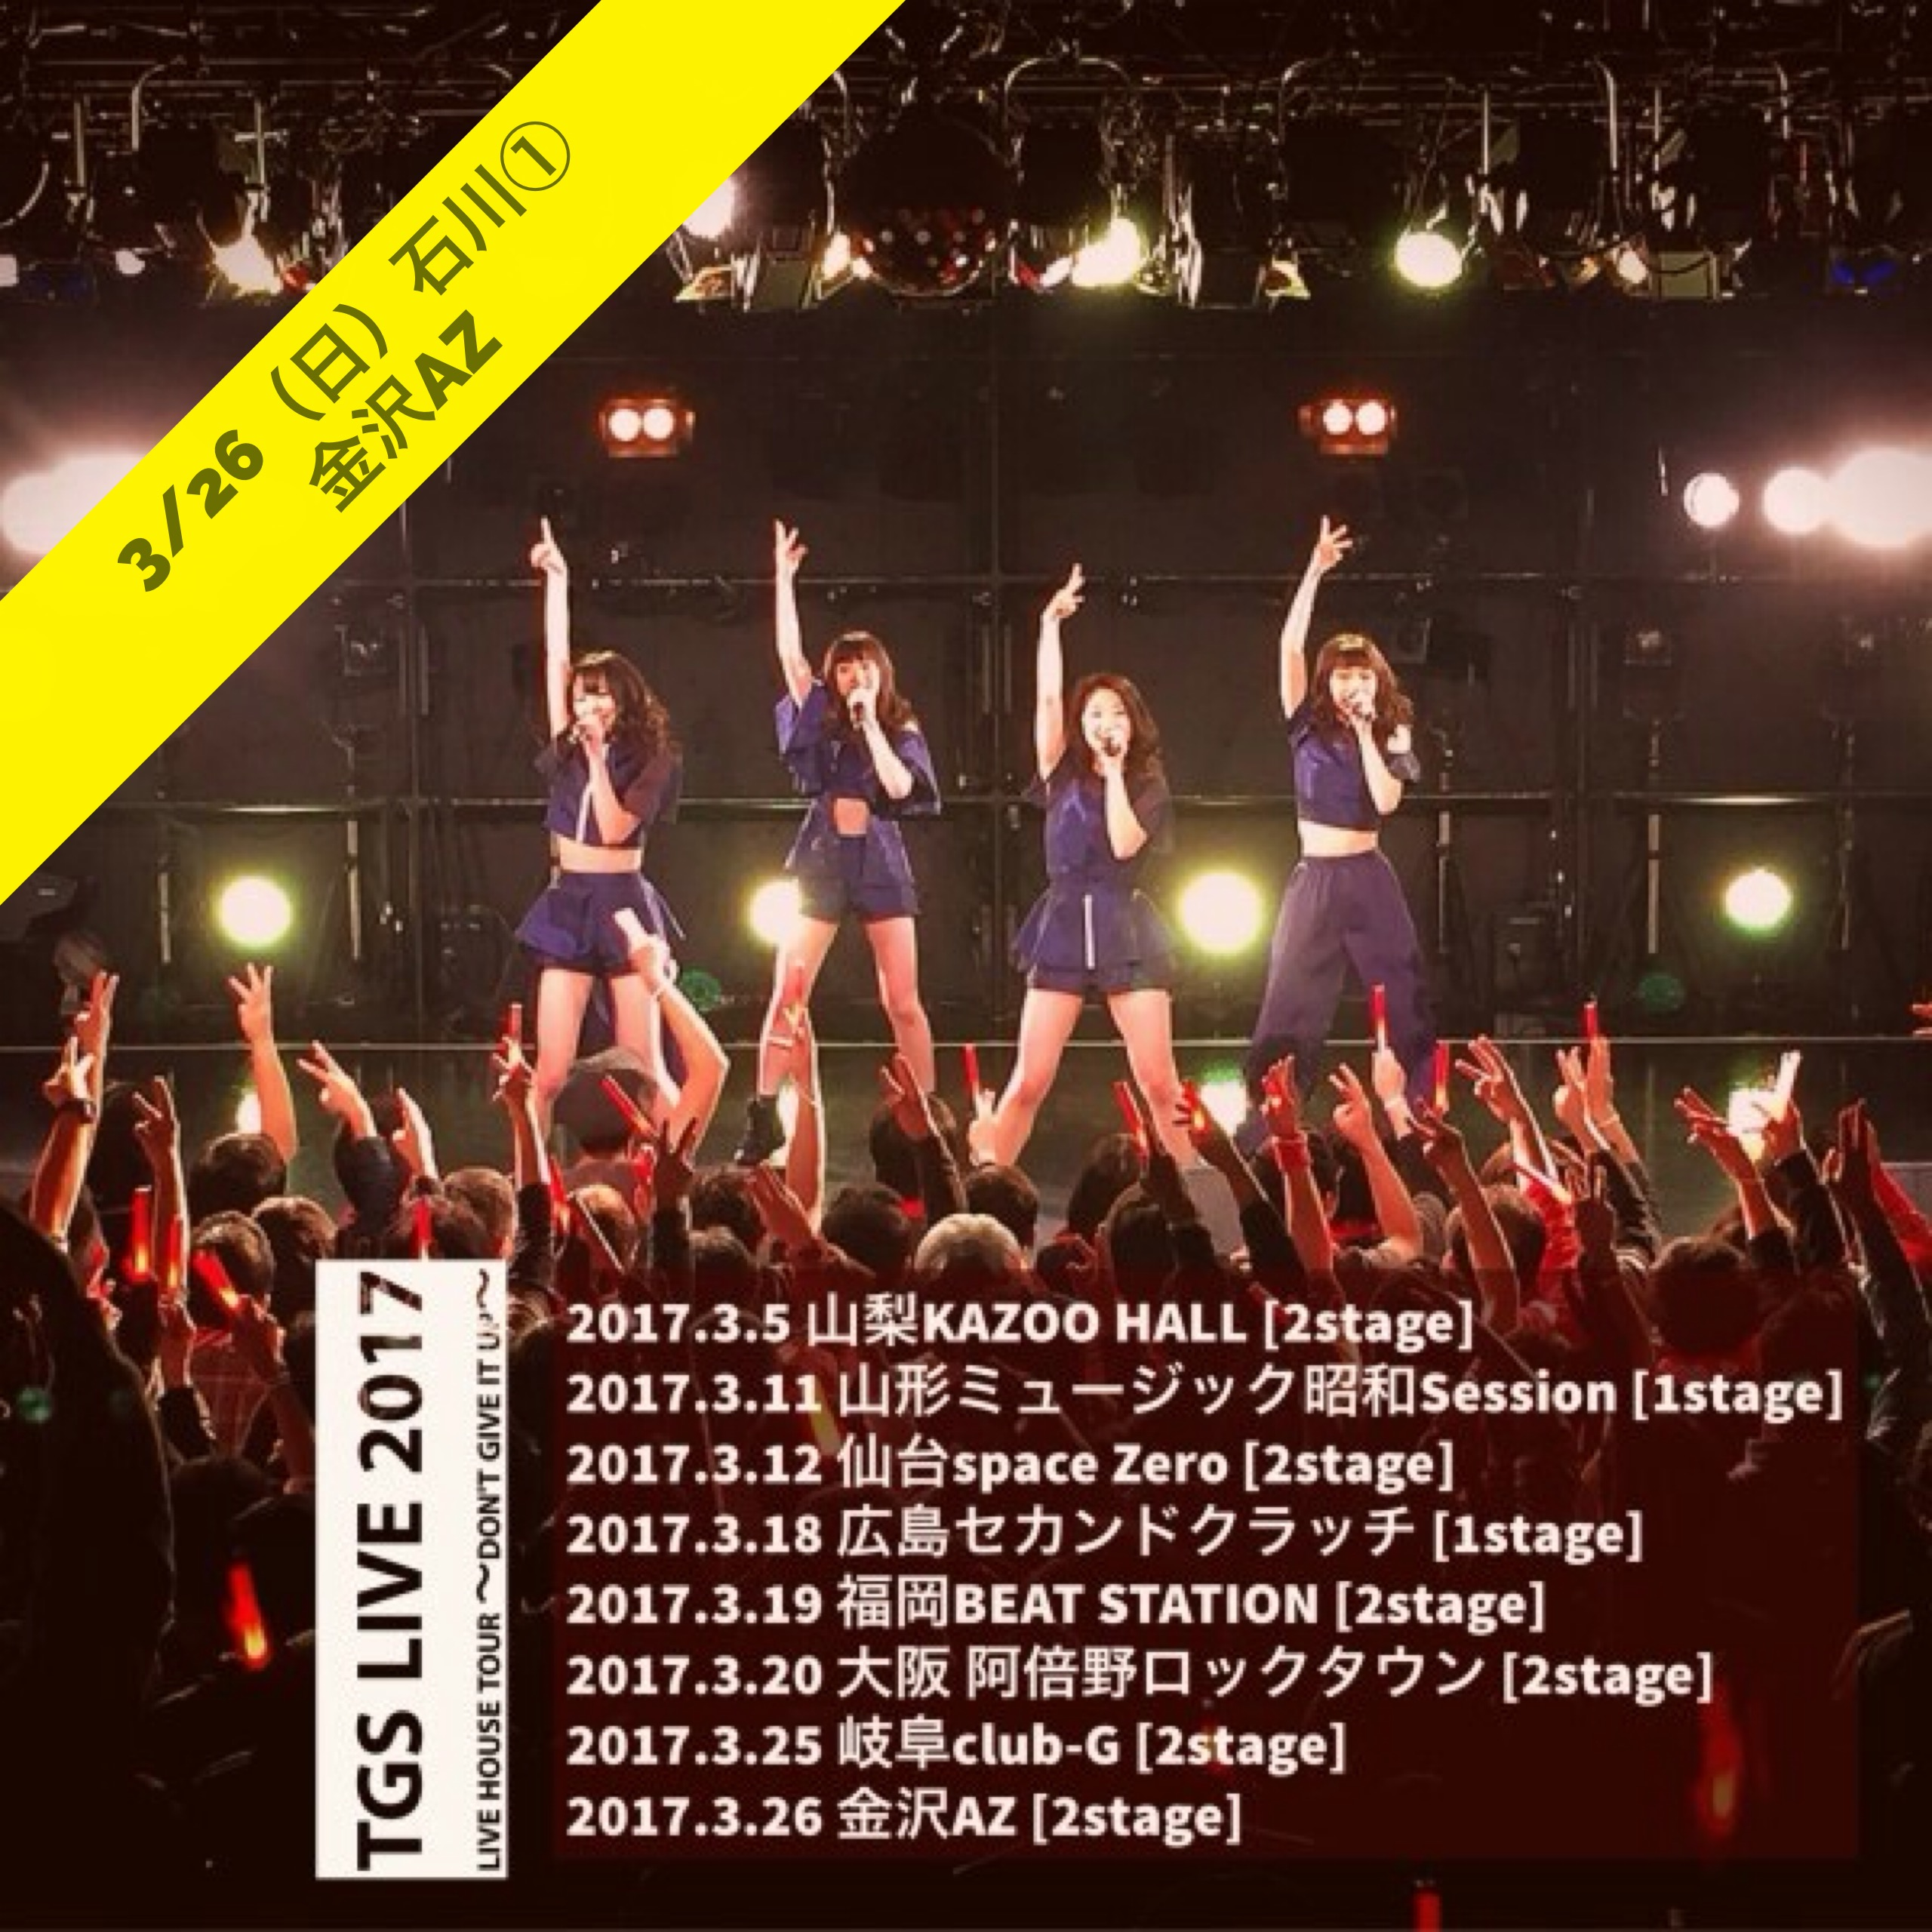 TGS LIVE 2017 LIVE HOUSE TOUR 〜Don't give it up〜(3/26石川①13:00公演)